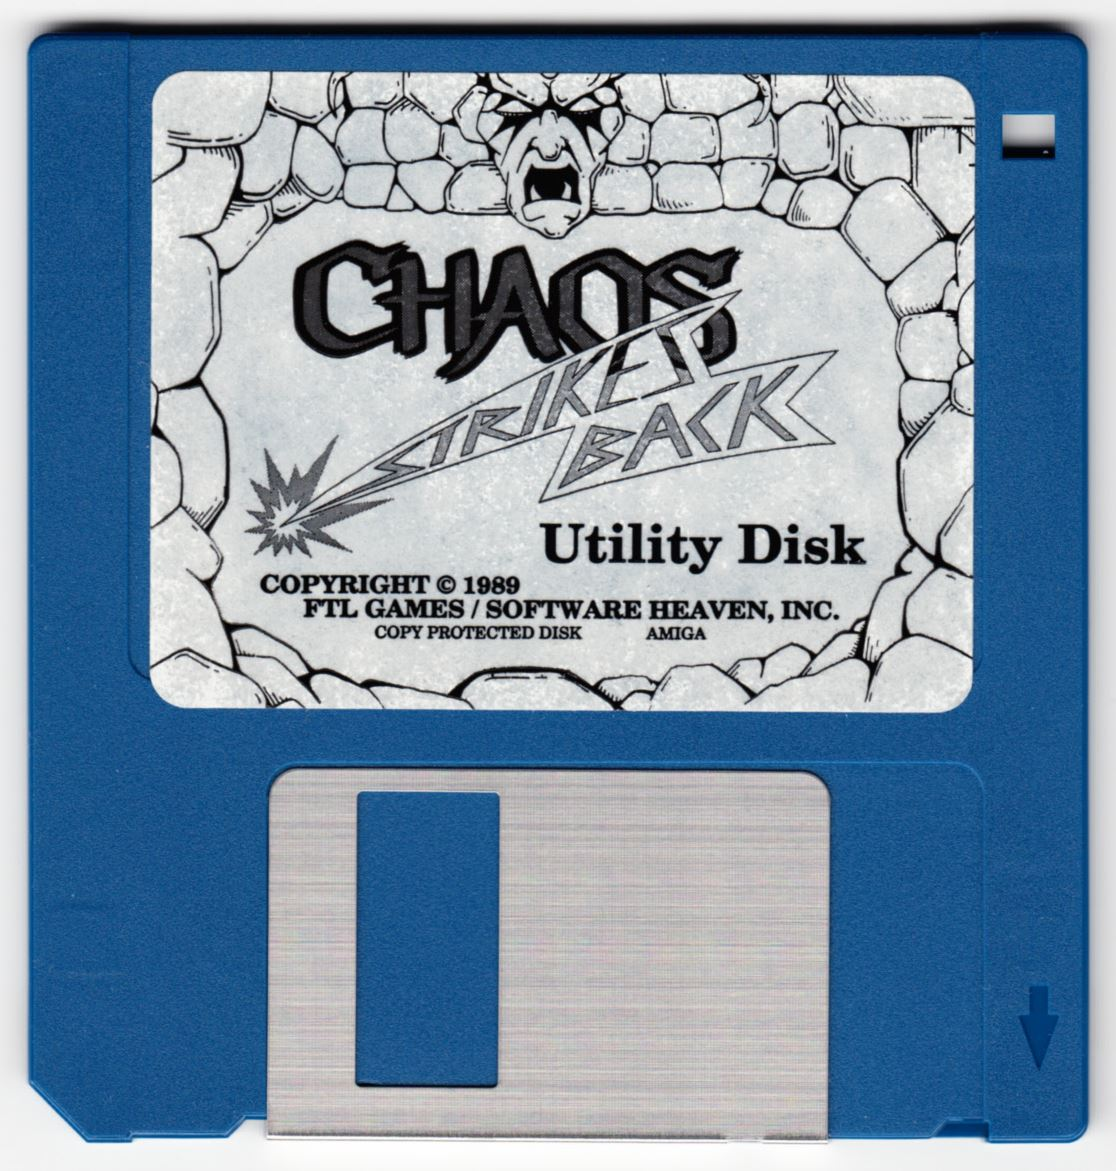 Game - Chaos Strikes Back - DE - Amiga - Utility Disk - Front - Scan